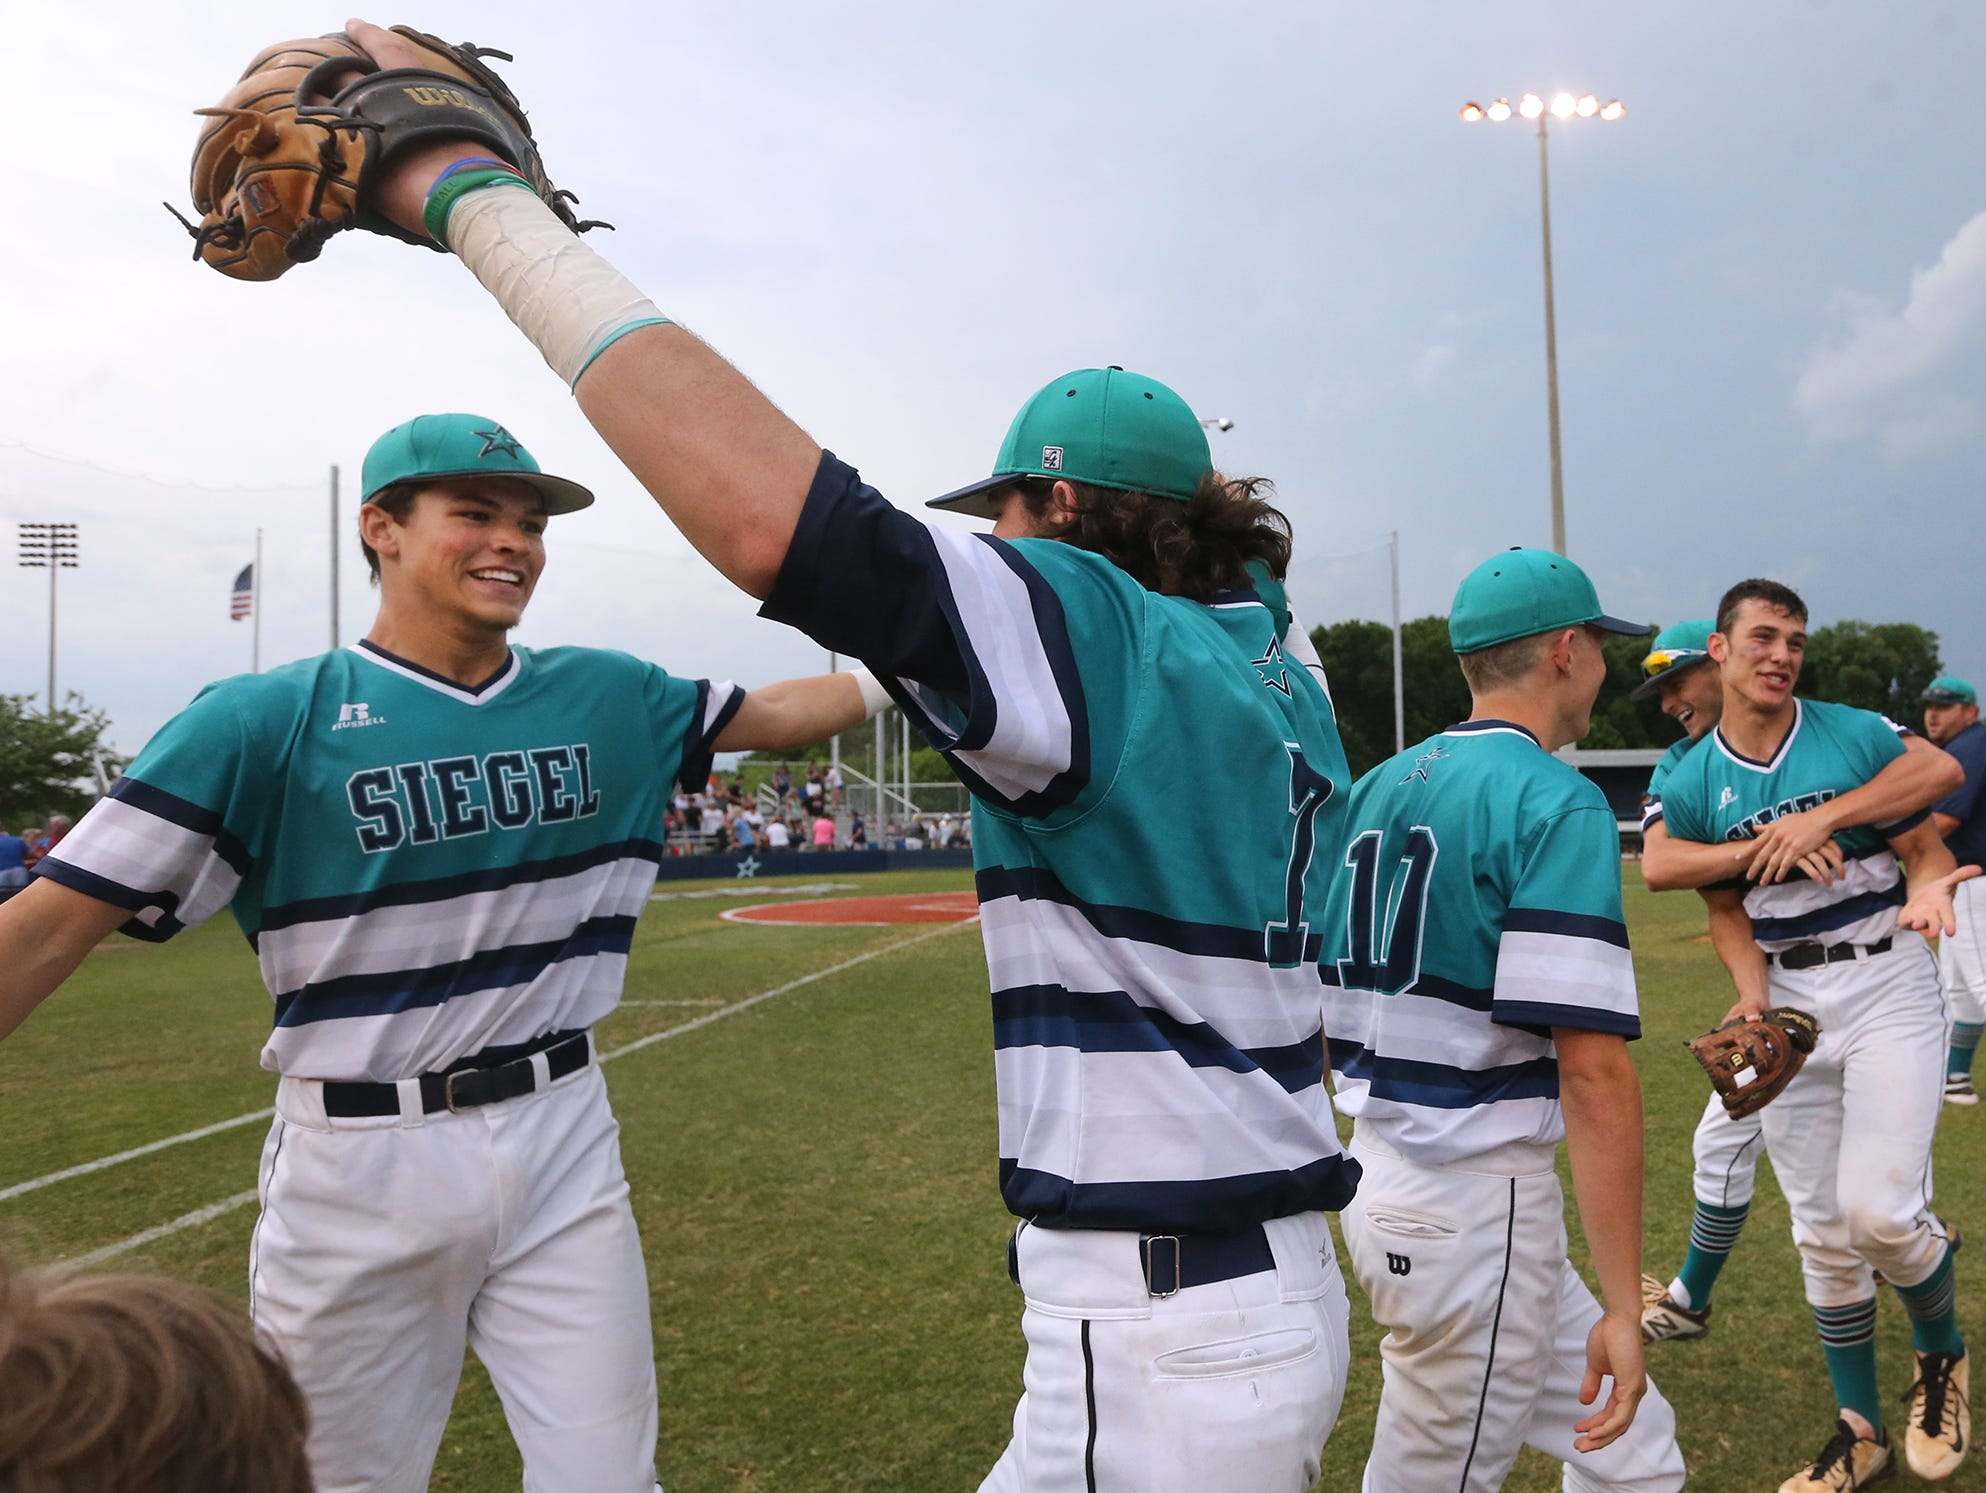 Siegel's Drew Benefiedl (24) and teammate Jordan Middleton (7) begin to hug after winning two games in a row to advance to the state championship game.